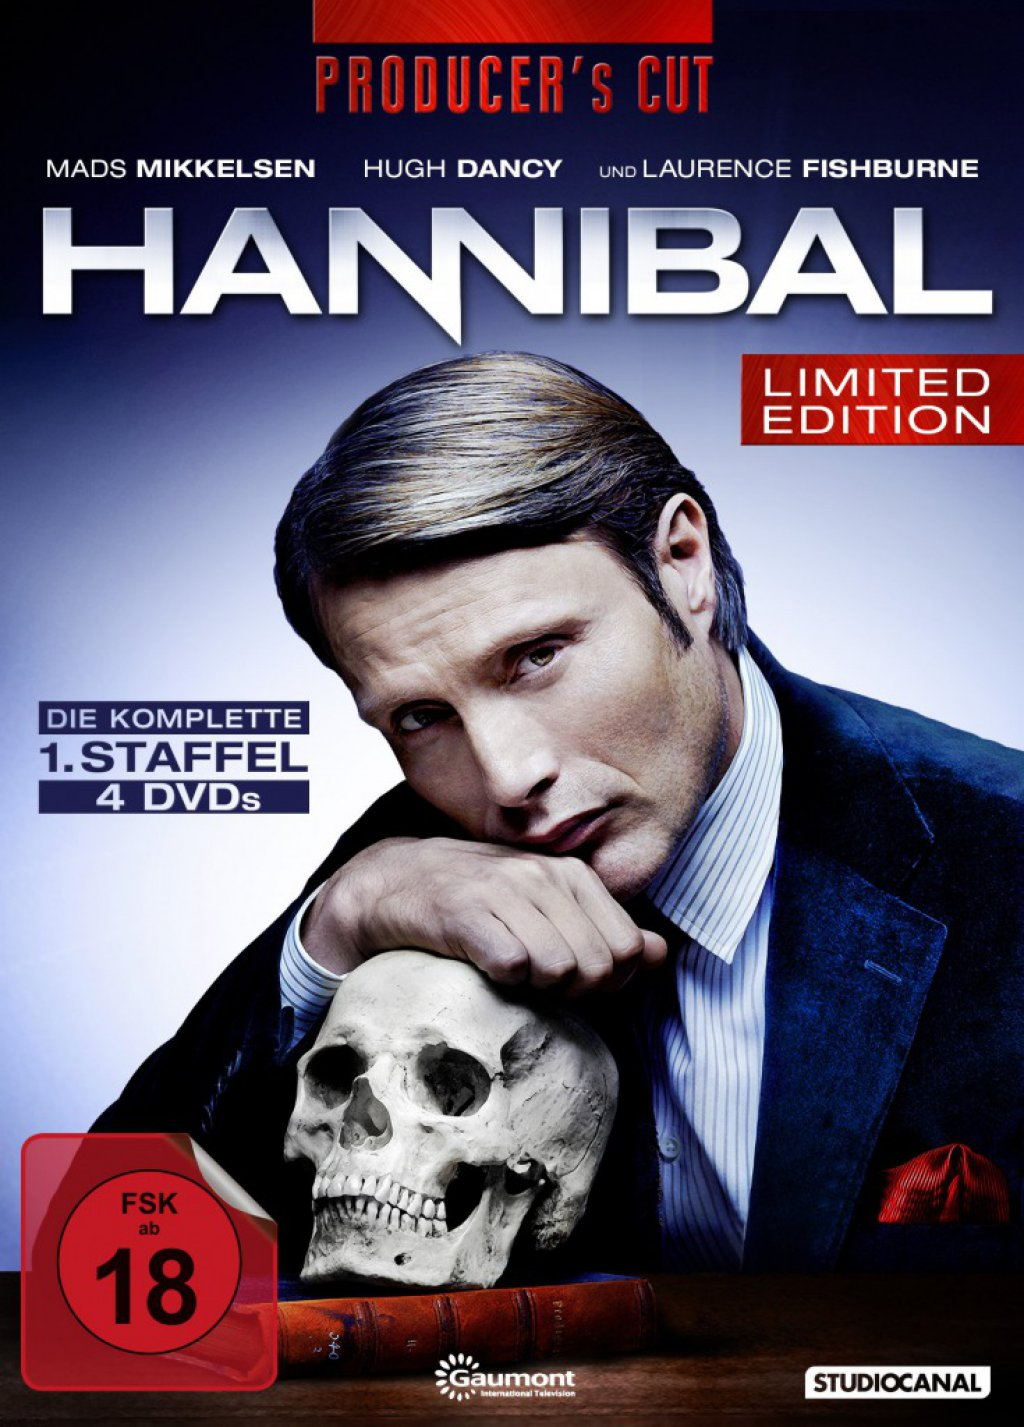 Hannibal - Staffel 01 / Producer's Cut (DVD)